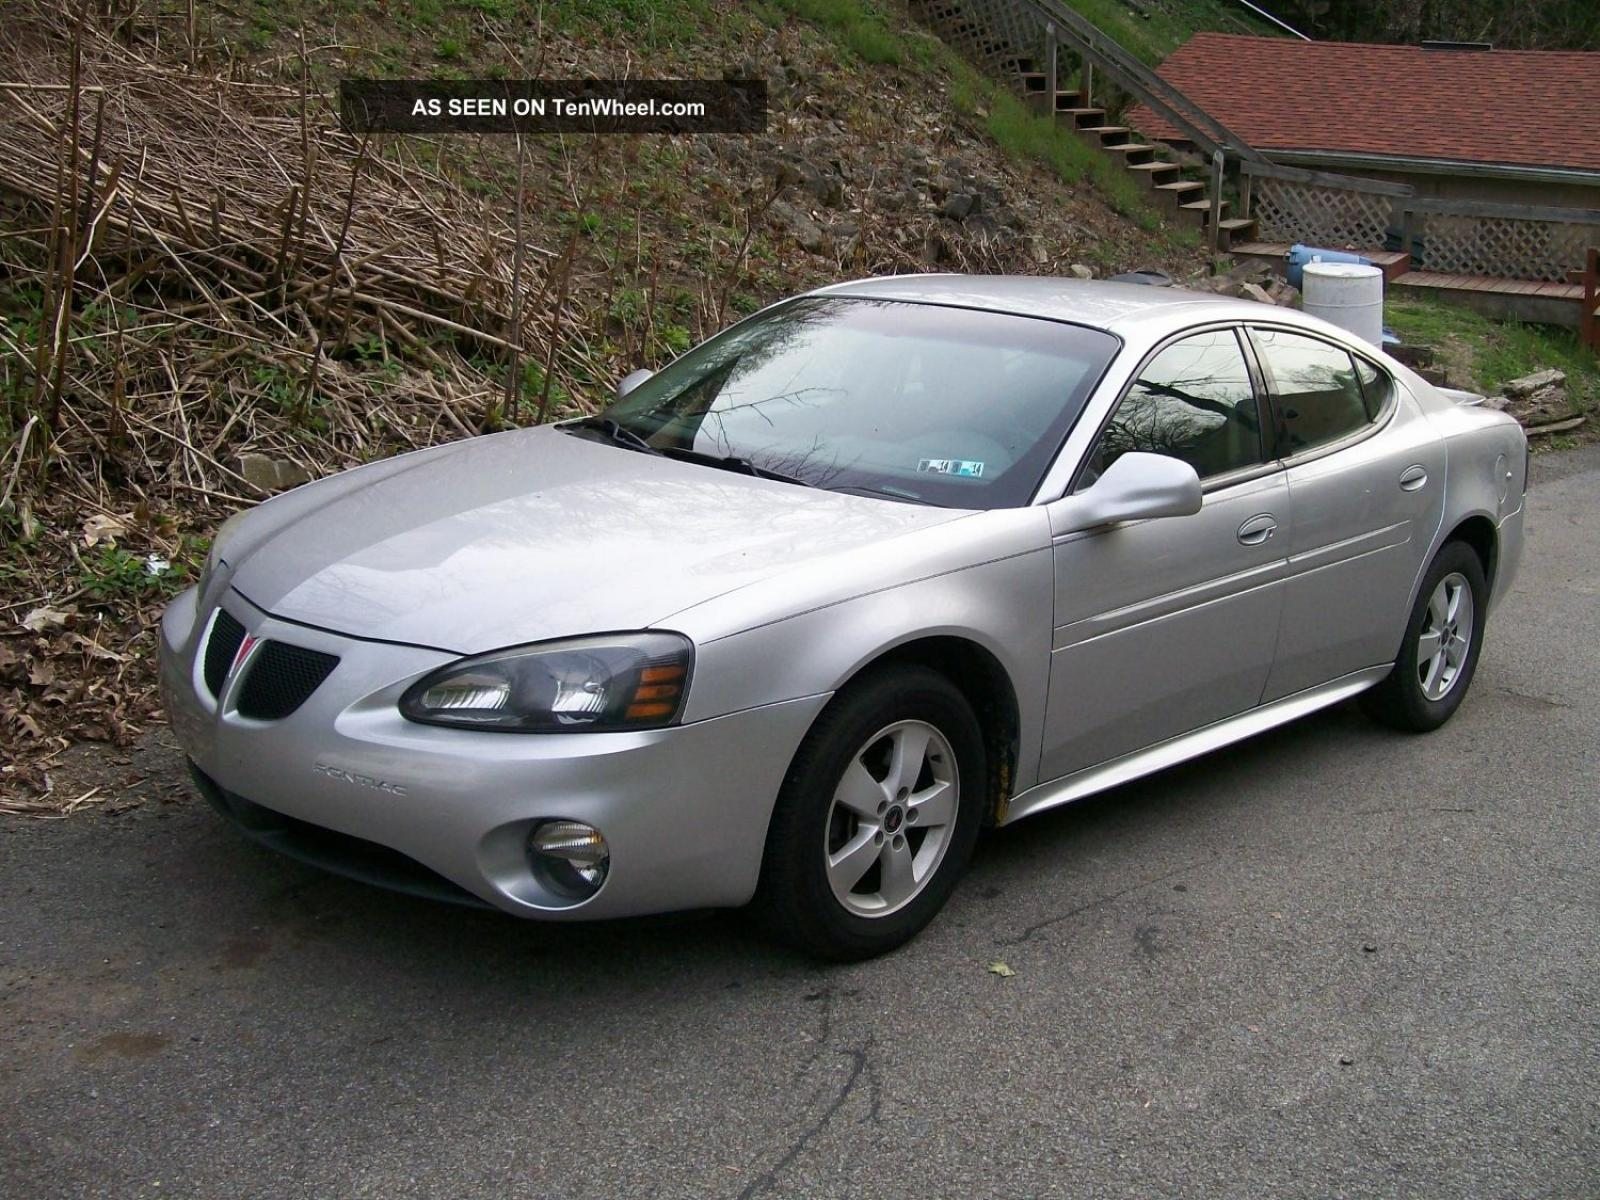 2005 Pontiac Grand Prix Information And Photos Zombiedrive 1995 Kia Sephia Engine Diagram